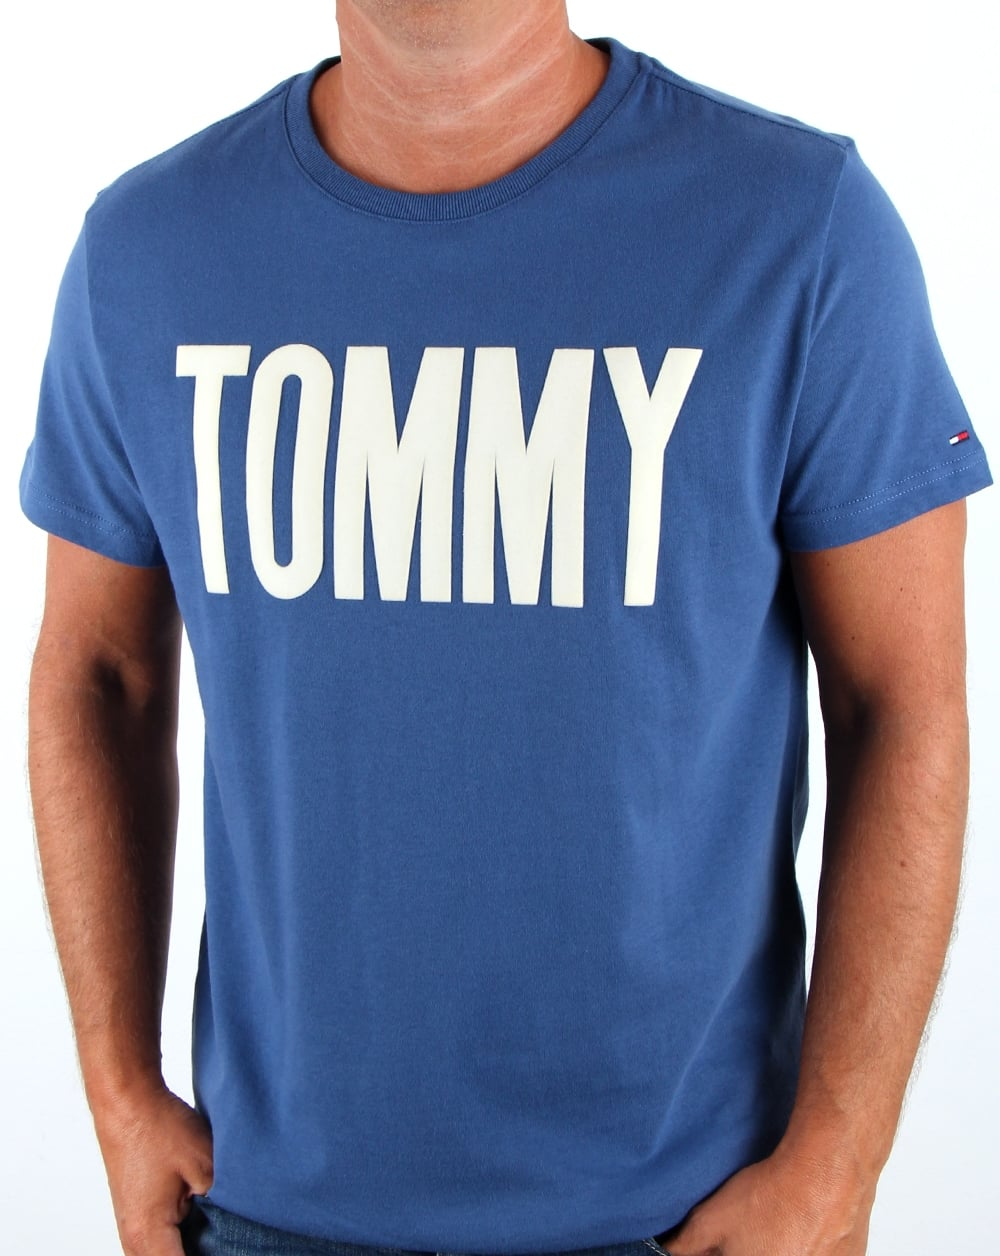 tommy hilfiger logo t shirt true navy men 39 s tee cotton. Black Bedroom Furniture Sets. Home Design Ideas